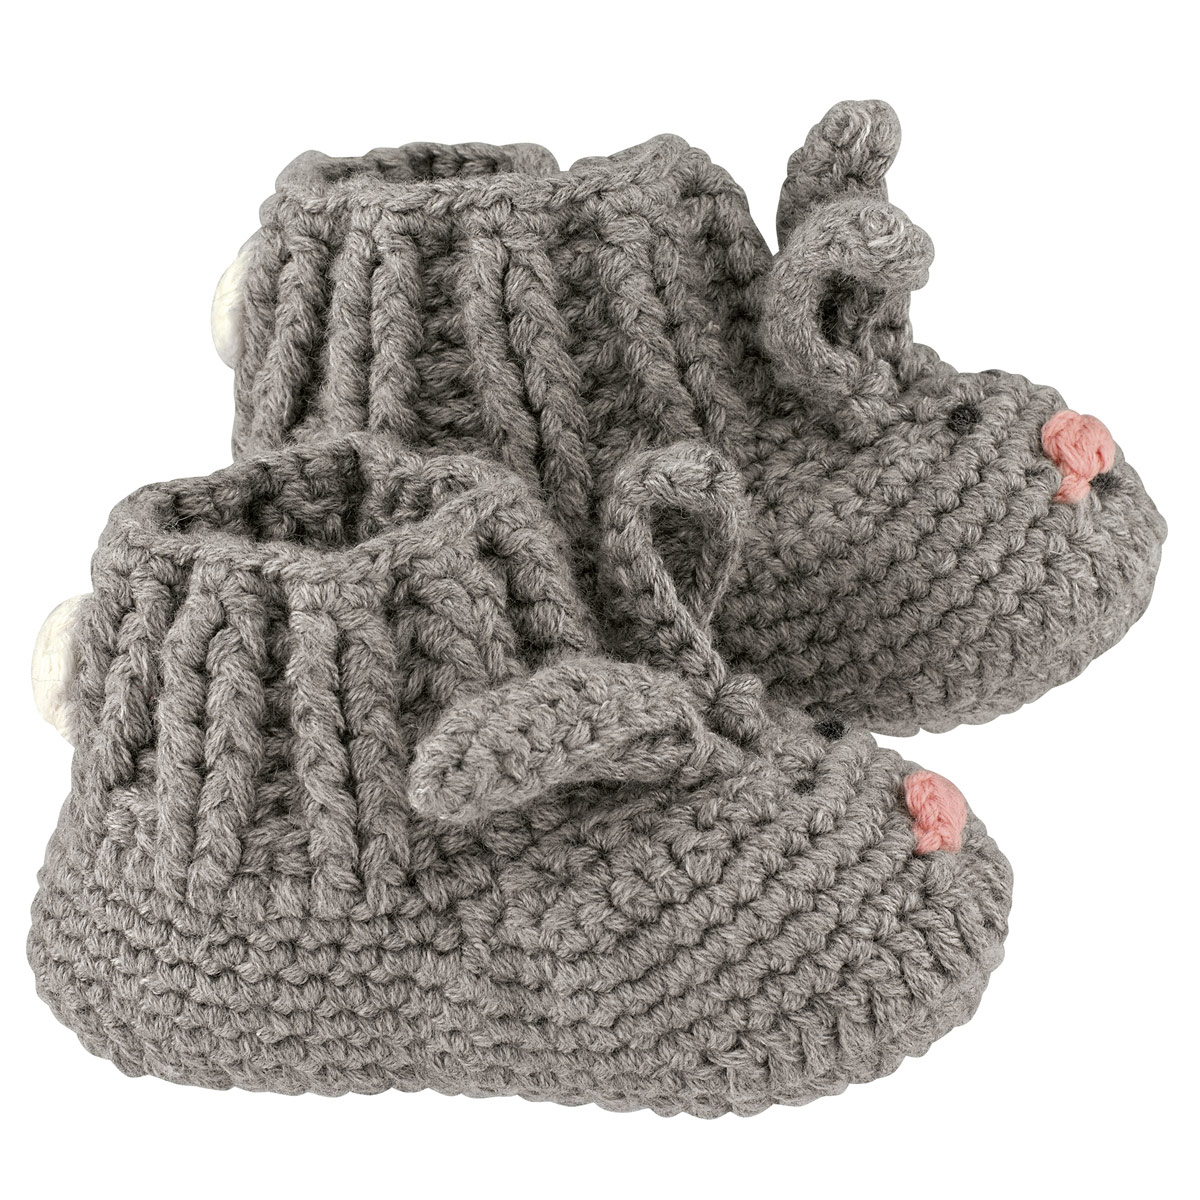 Cath Kidston Baby Knitted Bunny Booties   Penny Royal Gifts